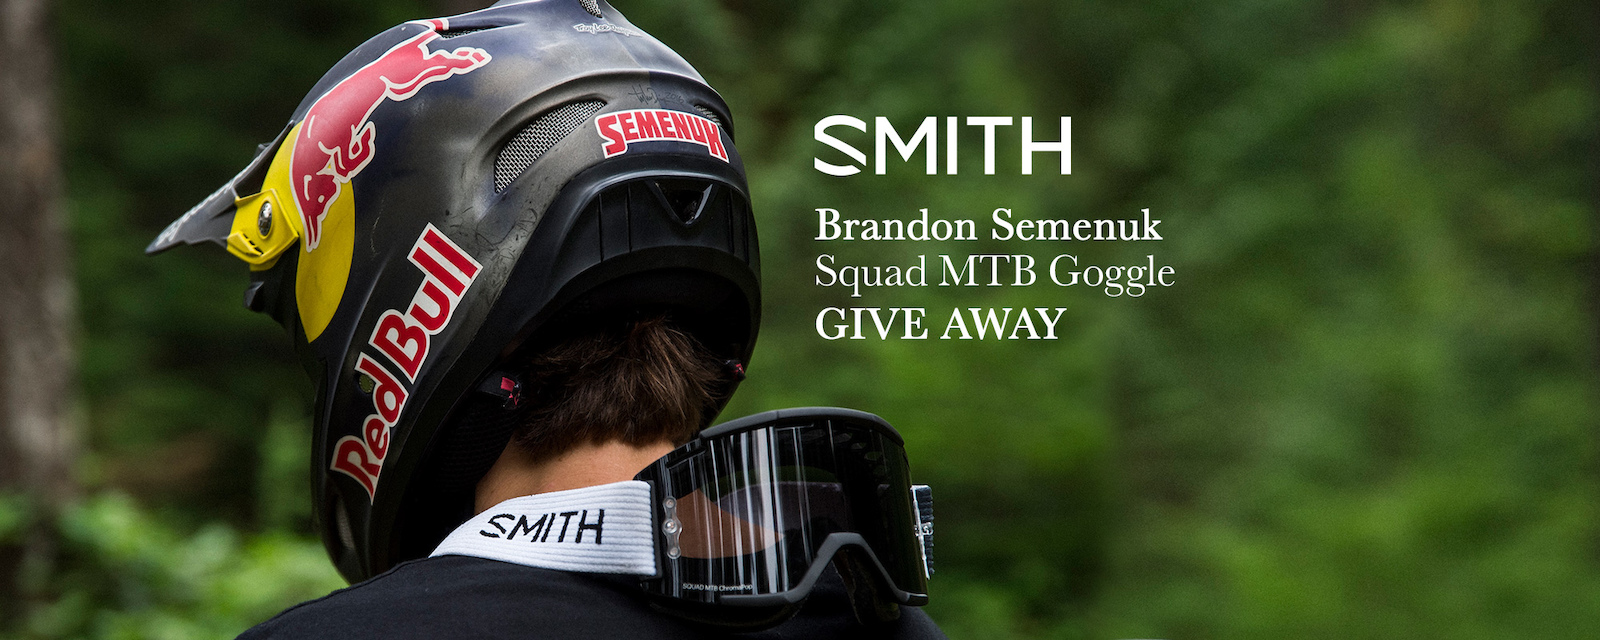 Win Brandon Semenuk Squad MTB Goggles - Giveaway and Video